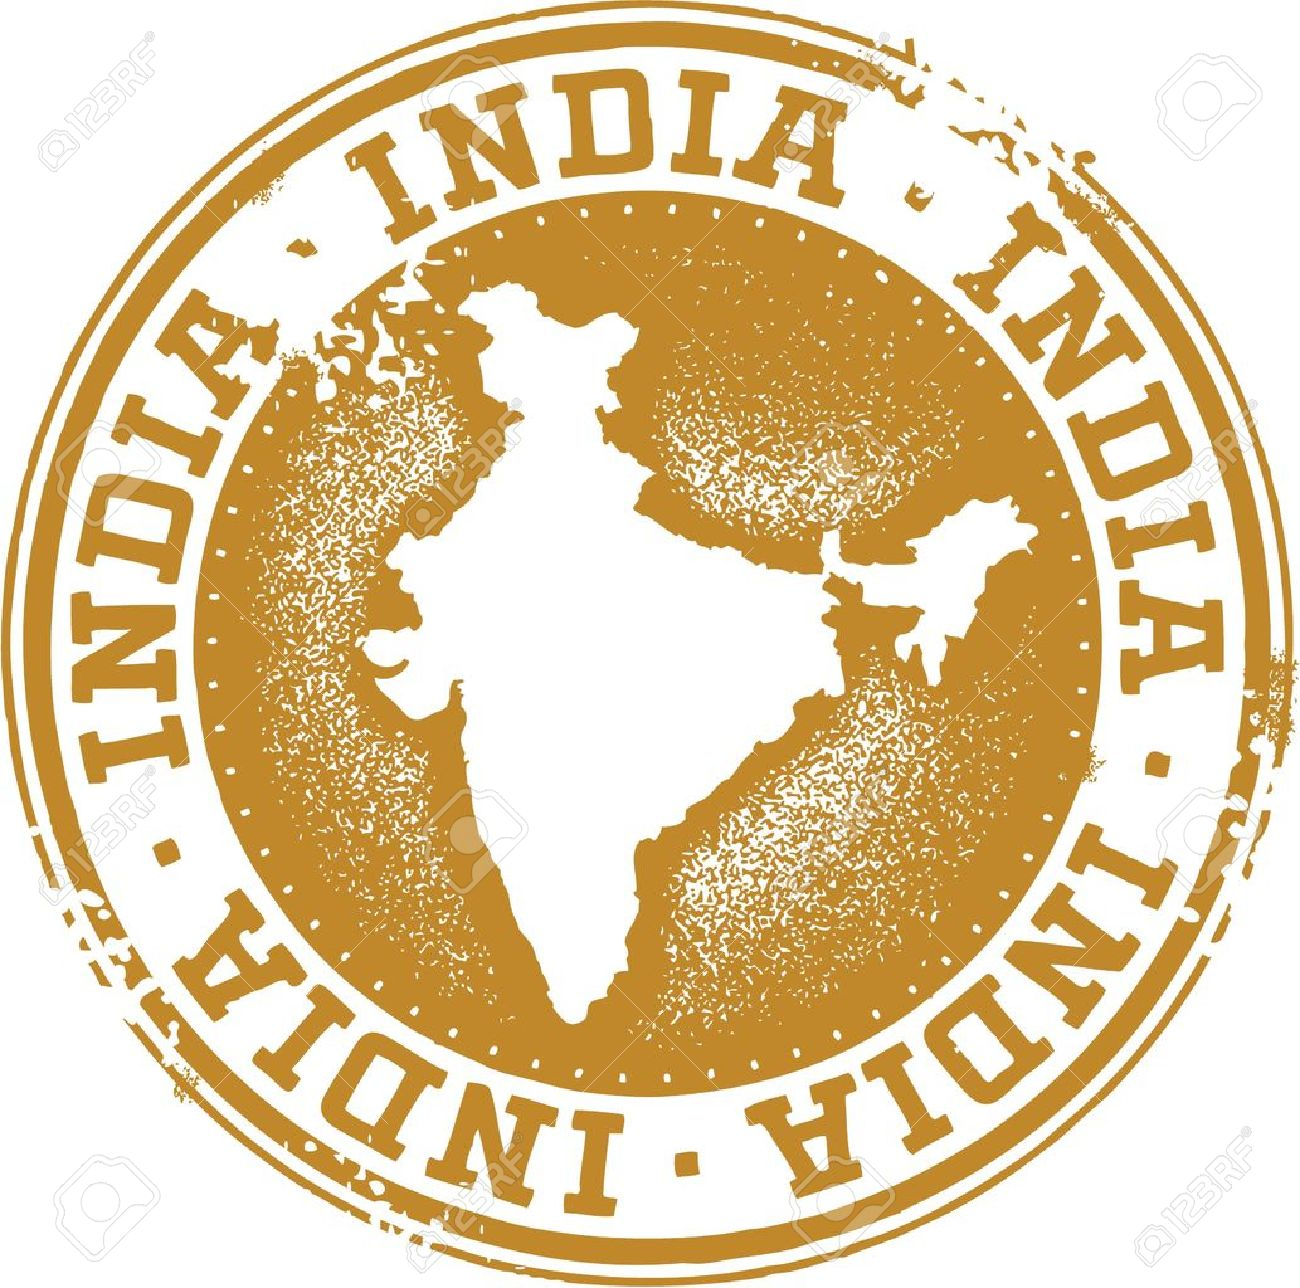 India Country Rubber Stamp Stock Vector - 21386273